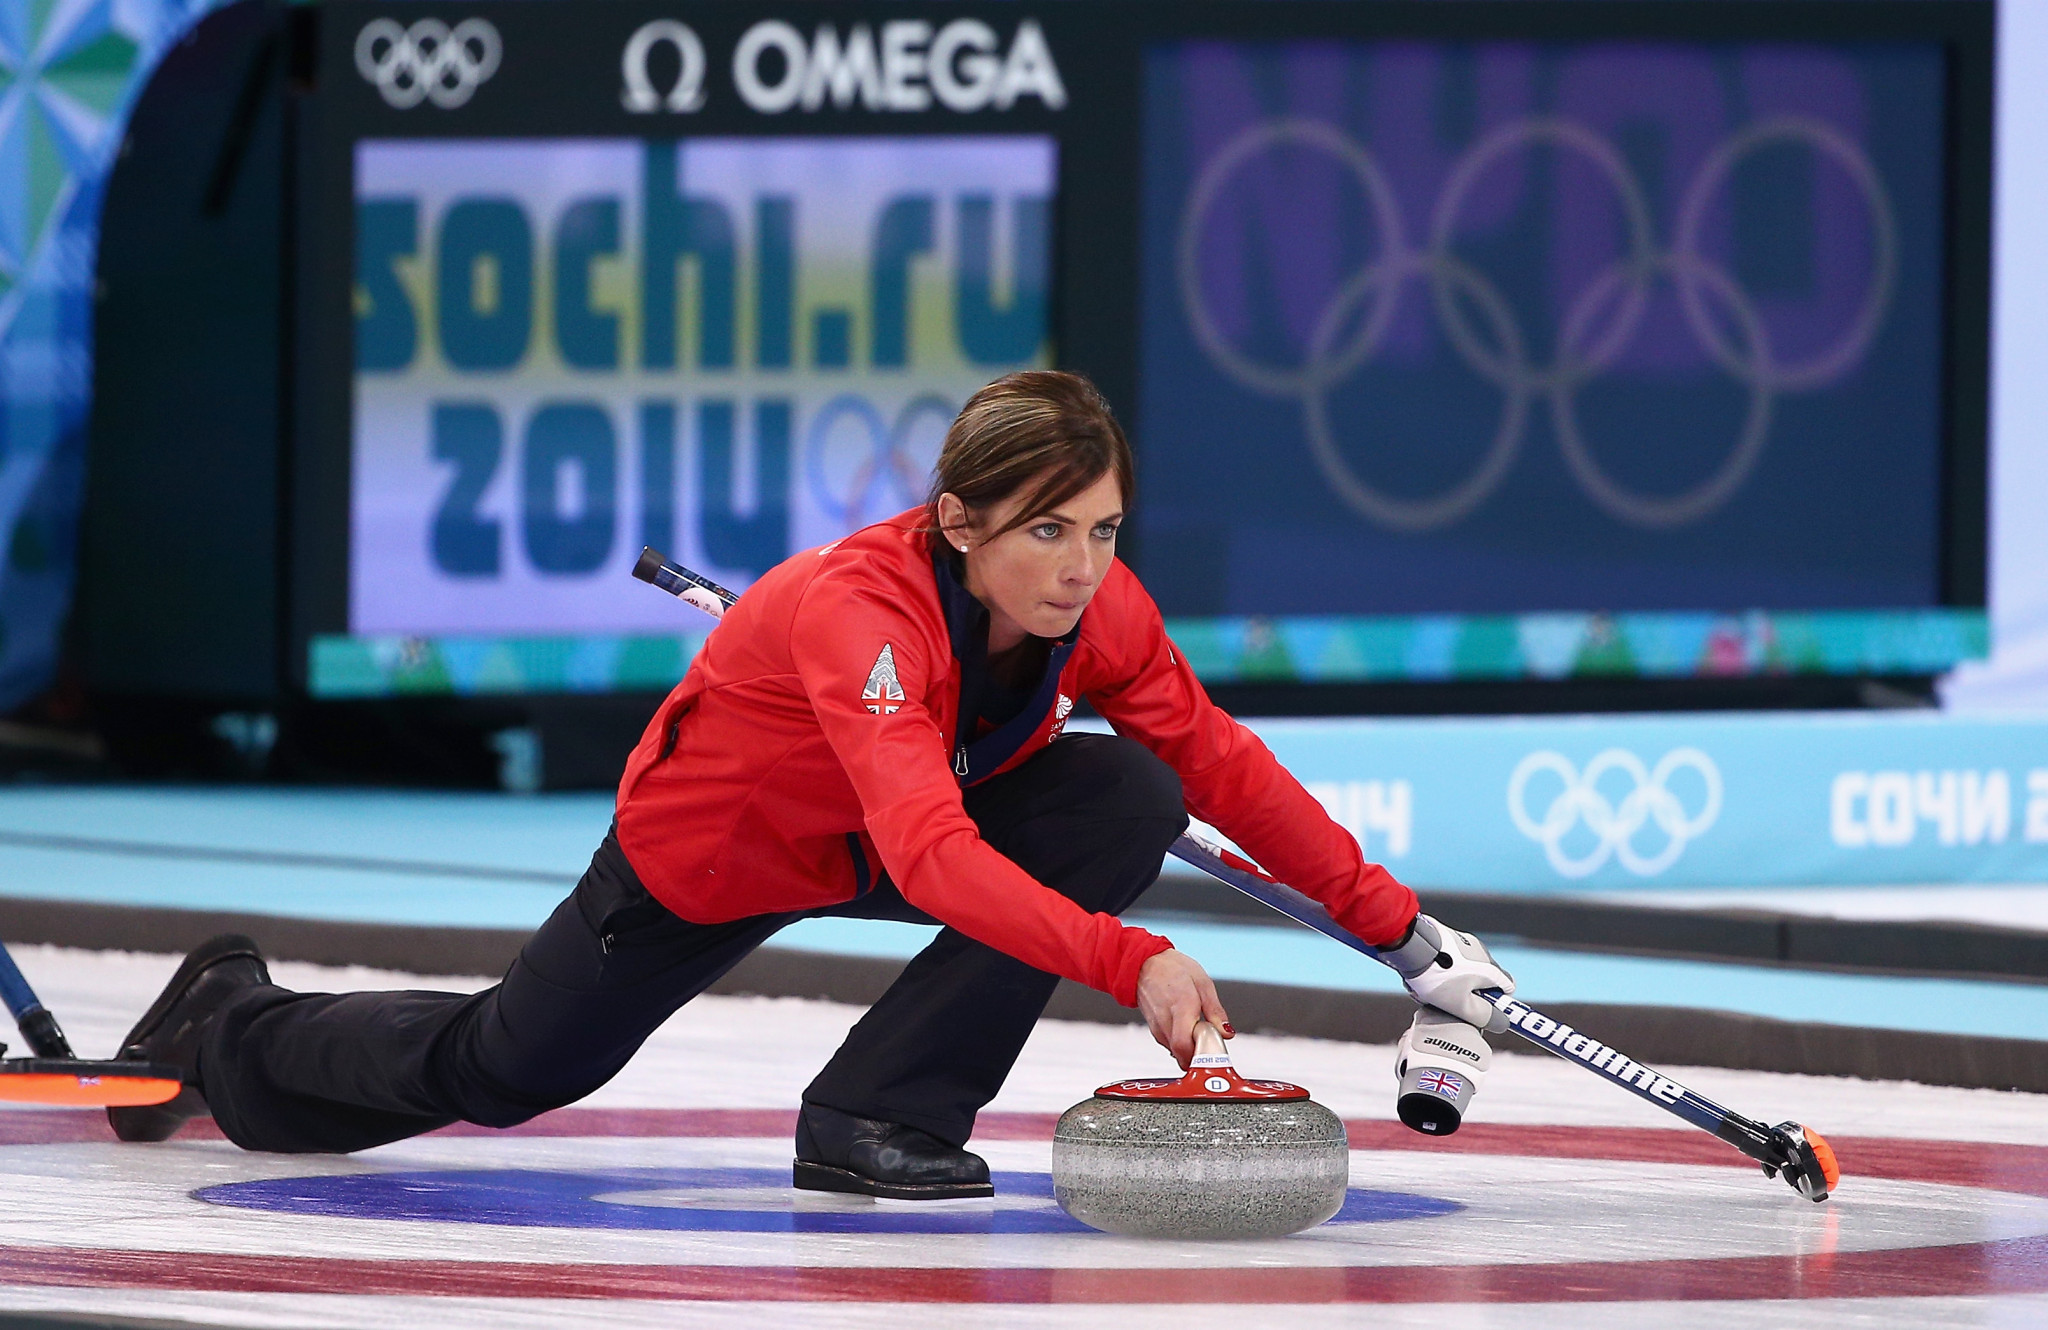 Eve Muirhead says more should be done to encourage participation in curling in Britain ©Getty Images